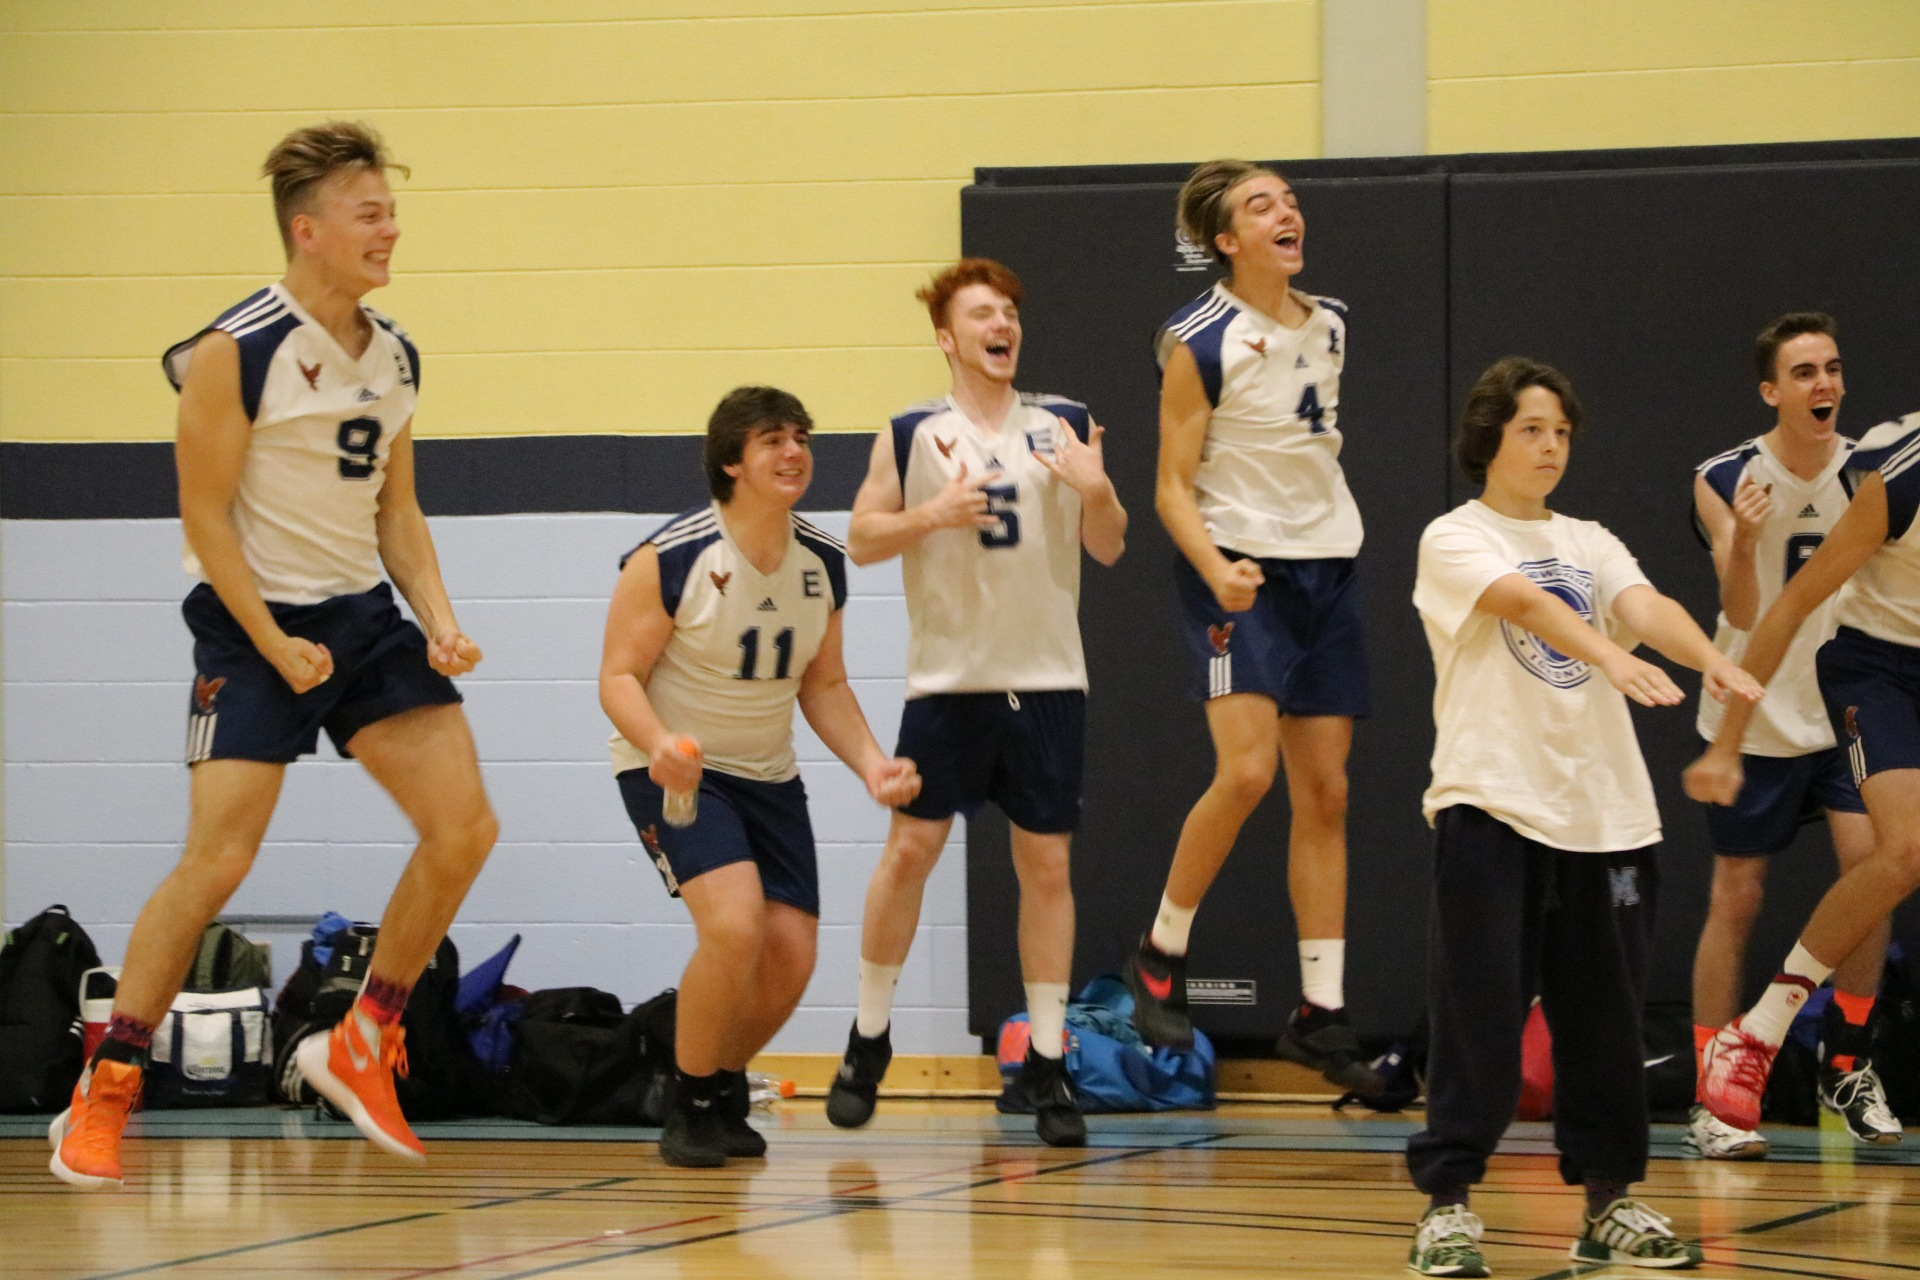 Senior boys volleyball team celebrating a point in the playoffs.